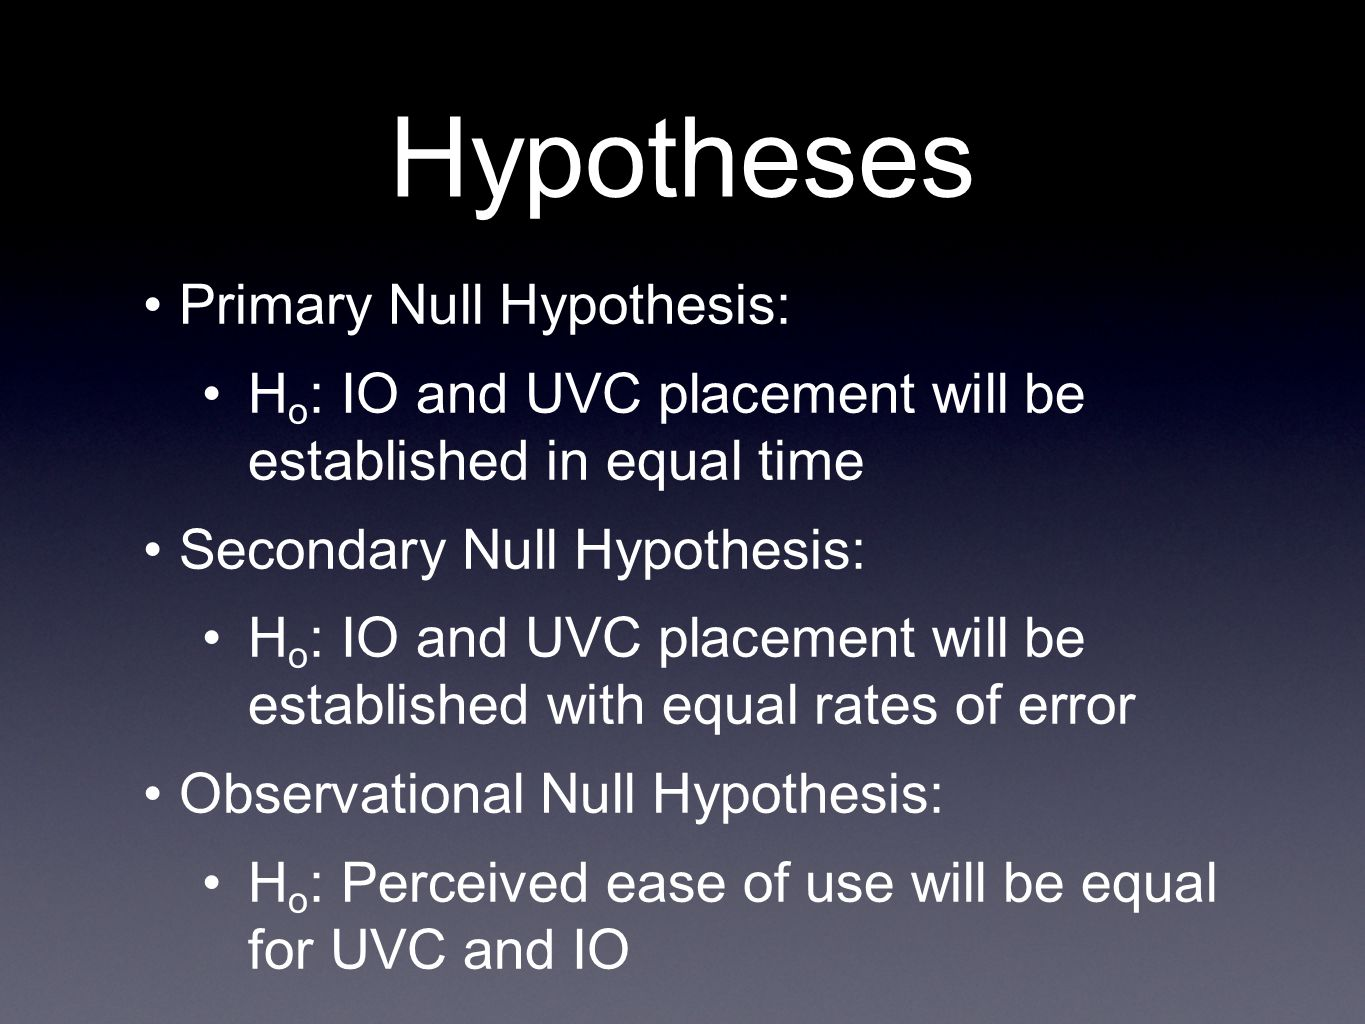 Hypotheses Primary Null Hypothesis: H o : IO and UVC placement will be established in equal time Secondary Null Hypothesis: H o : IO and UVC placement will be established with equal rates of error Observational Null Hypothesis: H o : Perceived ease of use will be equal for UVC and IO